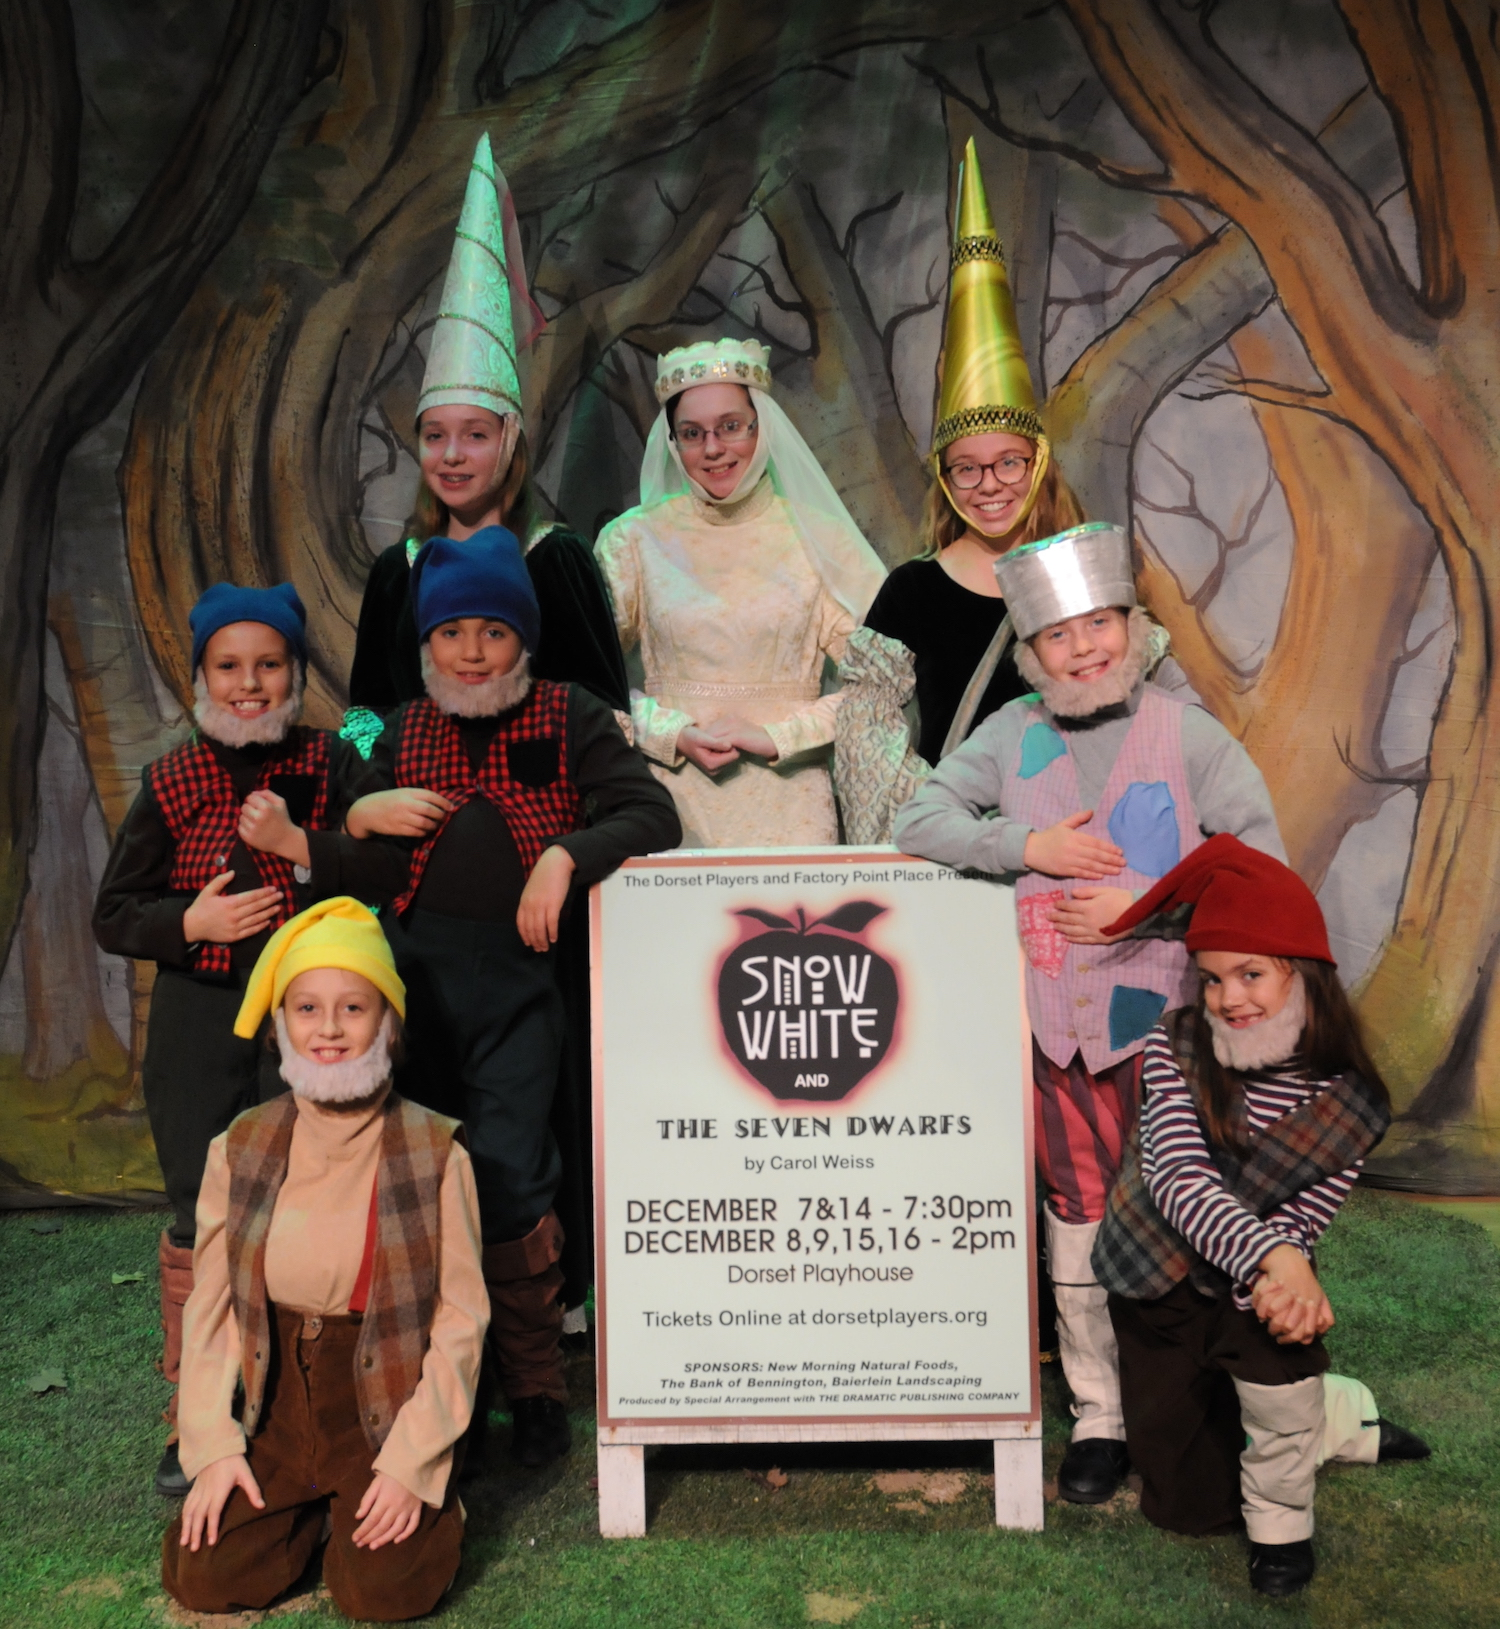 The Dorset Players present Snow White and the Seven Dwarfs